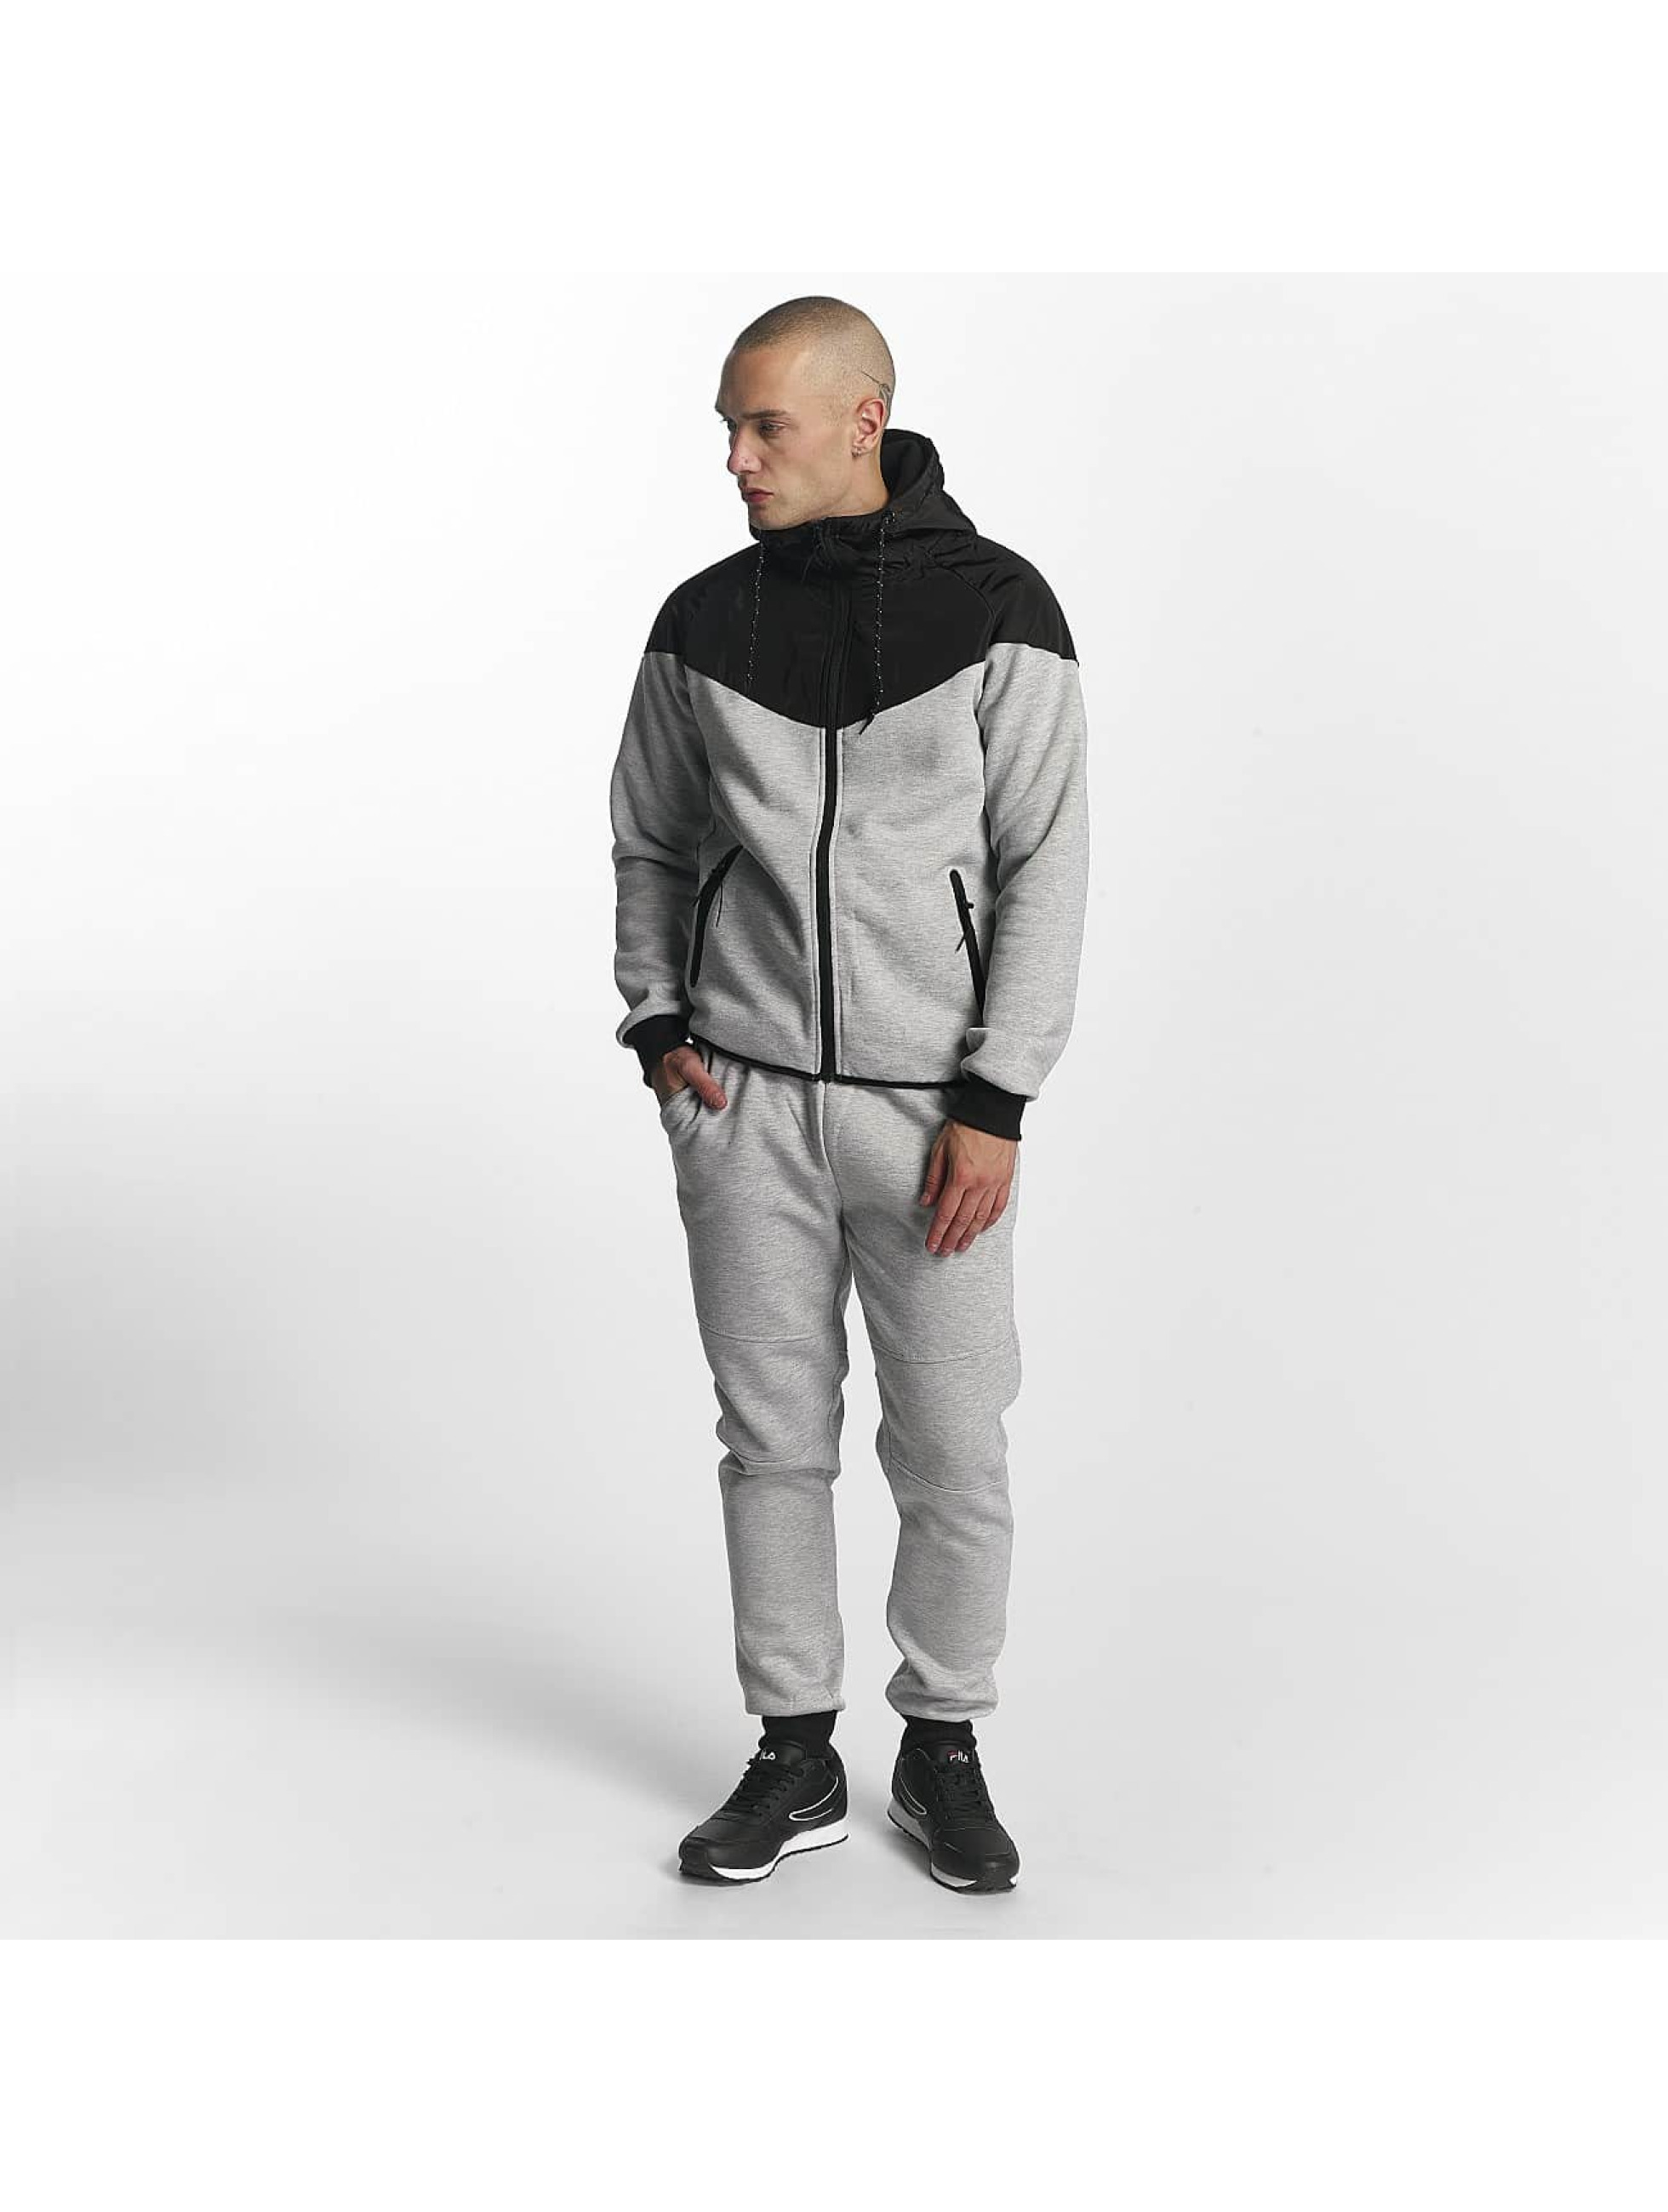 Zayne Paris Ensemble & Survêtement Paris gris